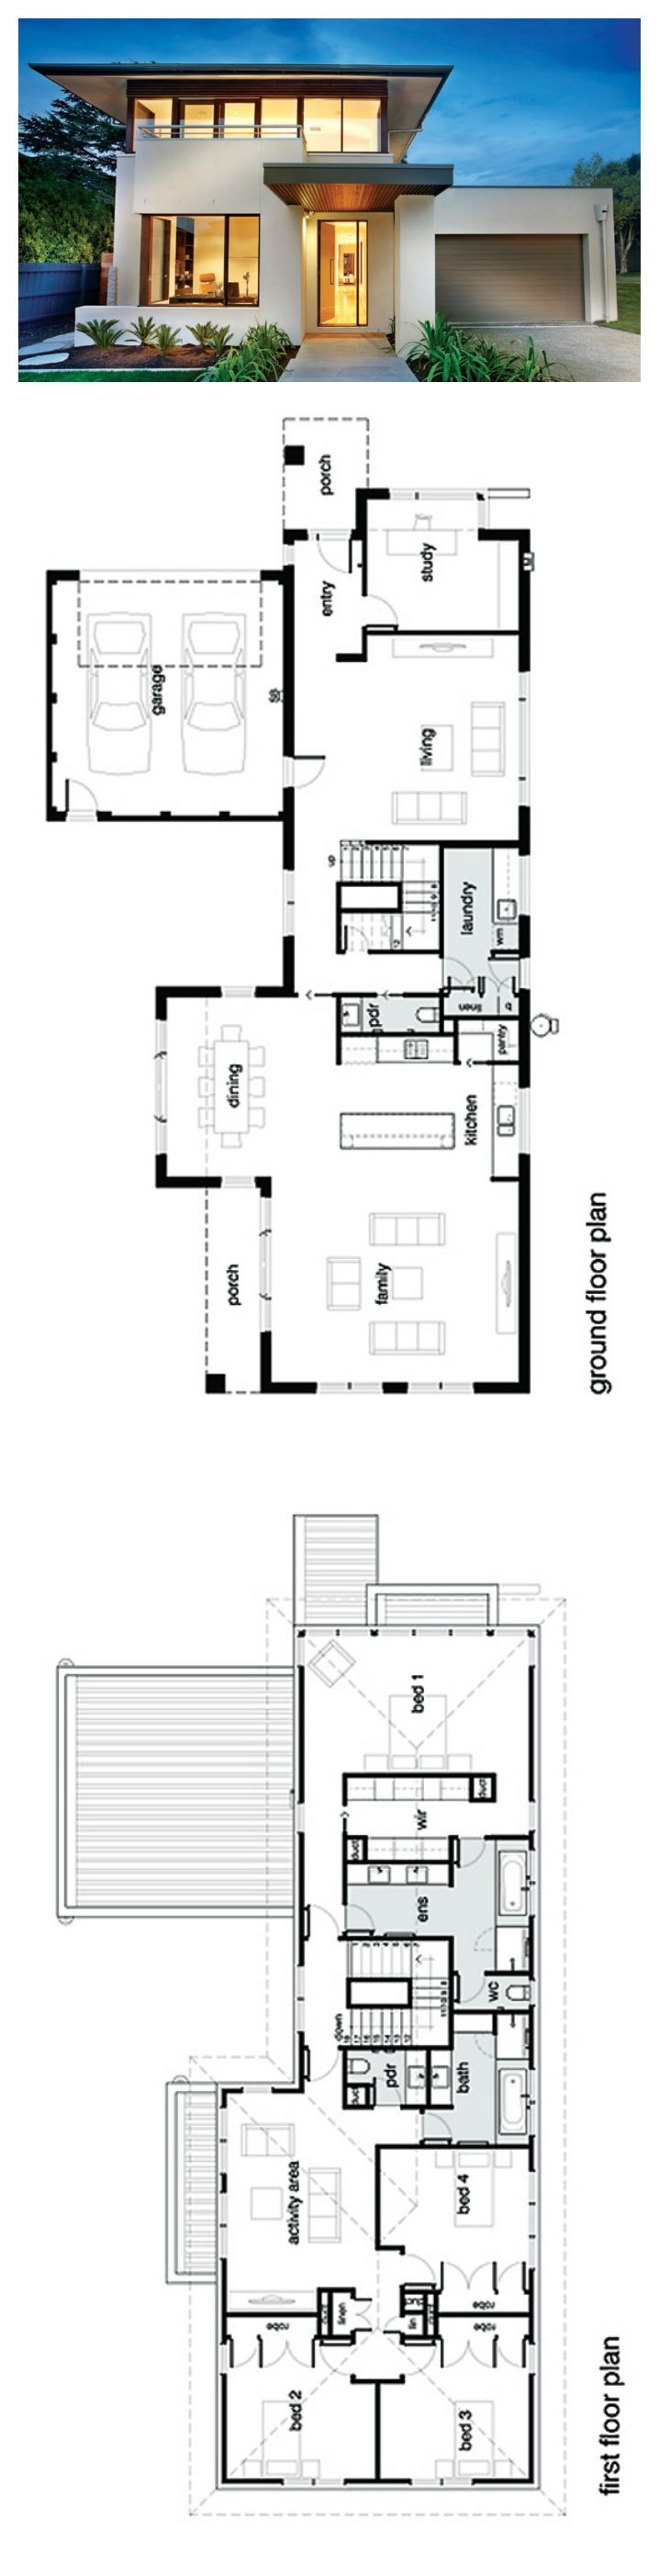 The 25 best ideas about modern house plans on pinterest for In ground home designs